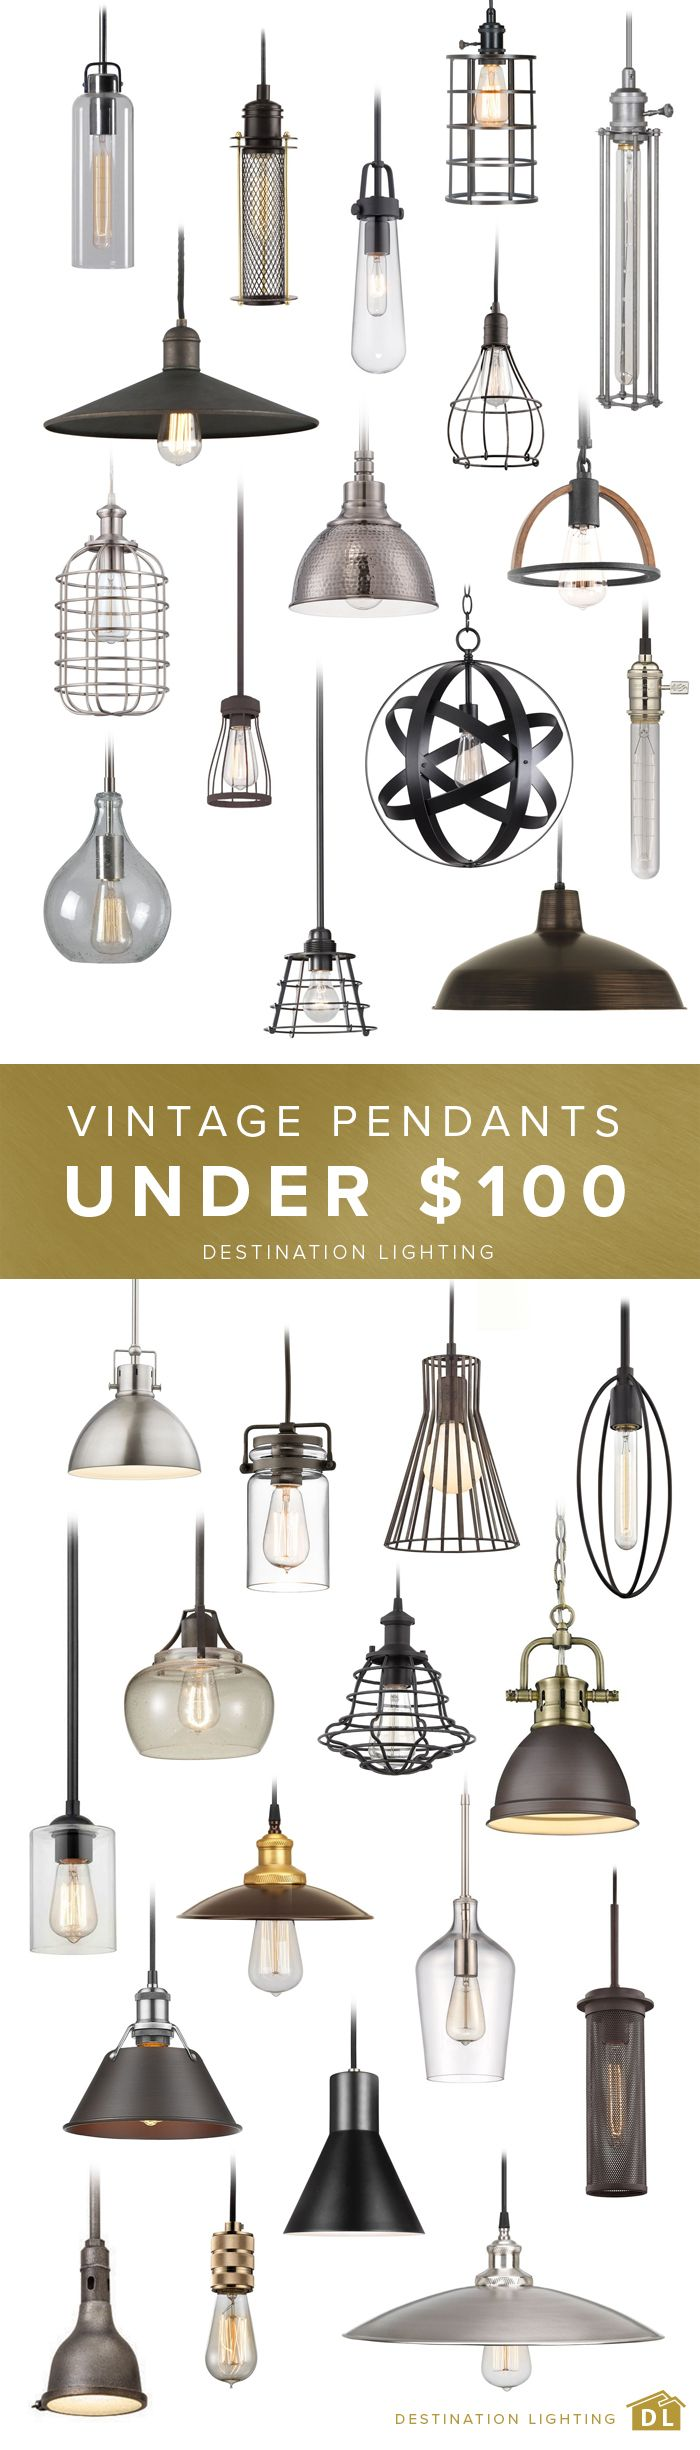 All the vintage style you could ever need, for less than $100. Come take a look at Destination Lighting.